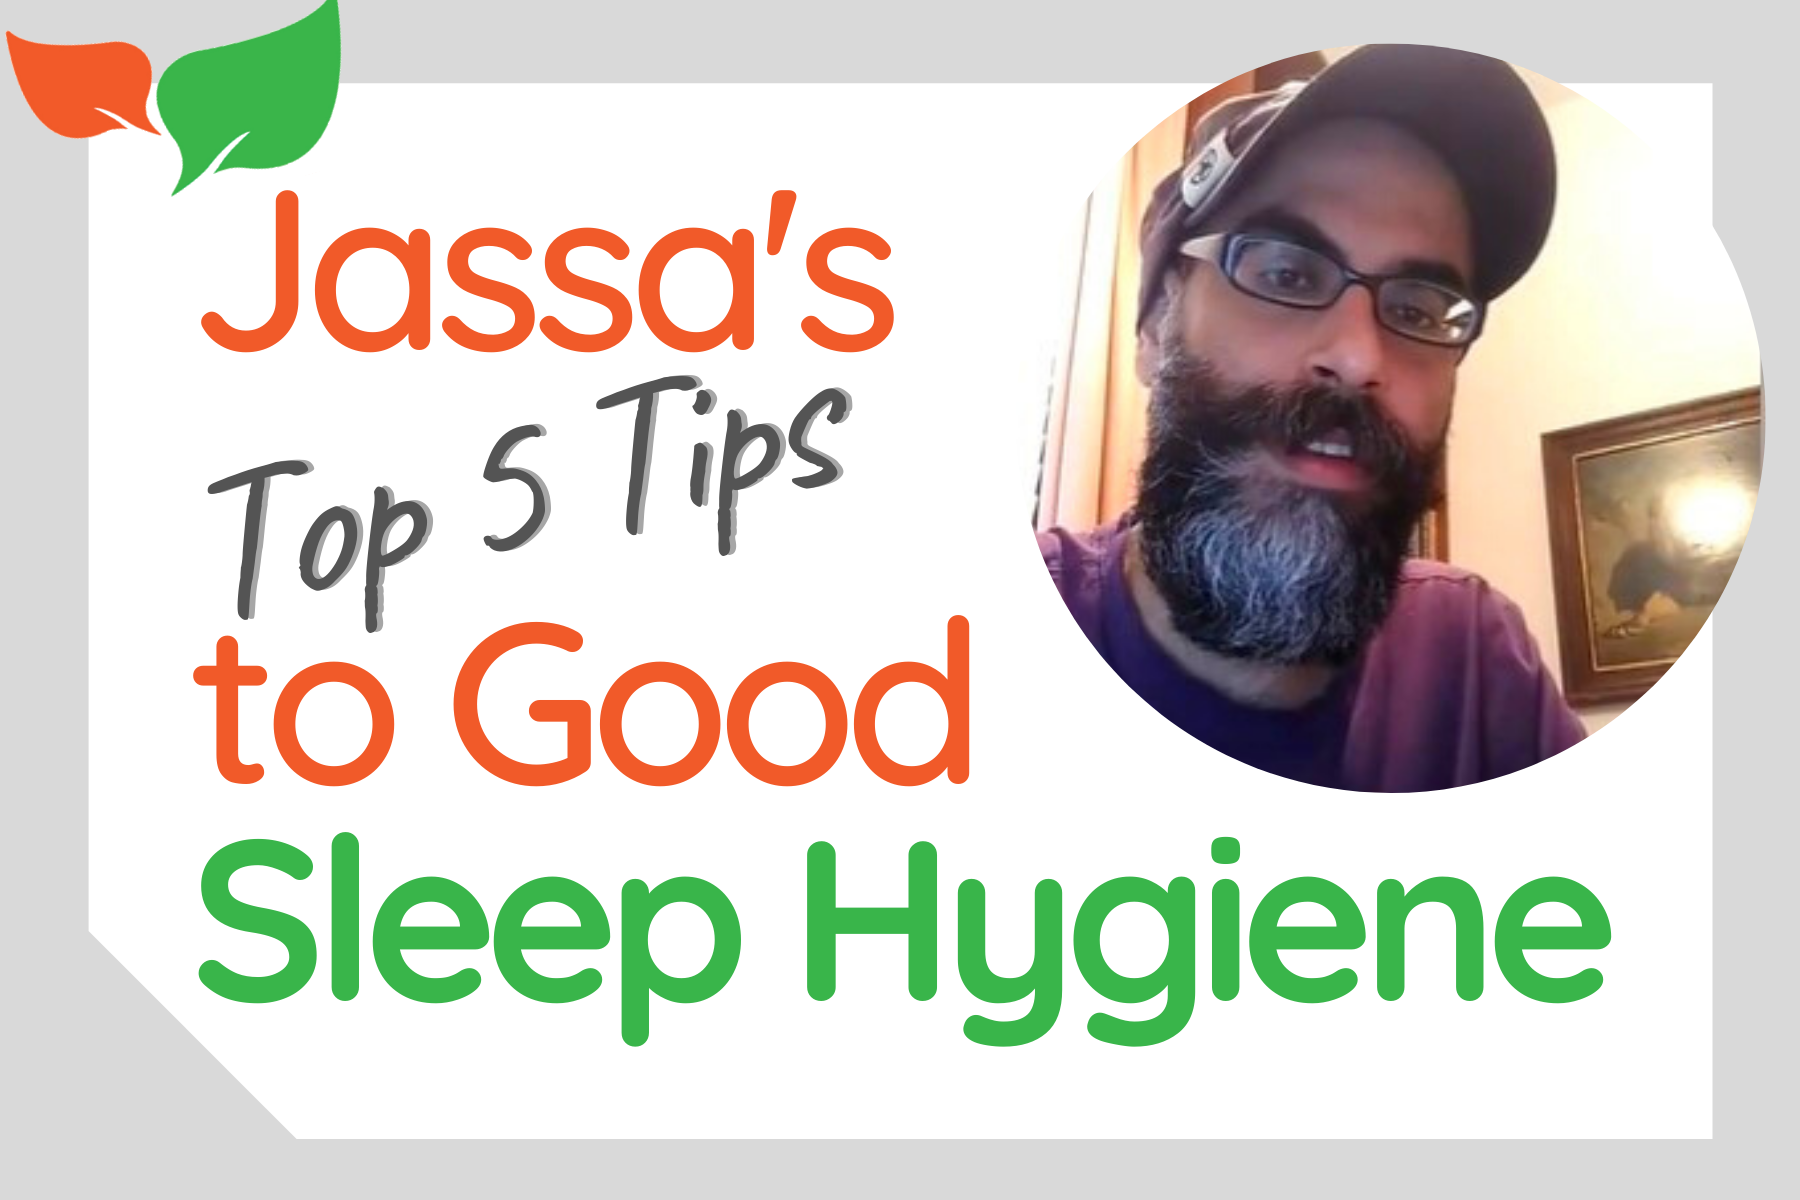 Jassa's Five Tips for Good Sleep Hygiene